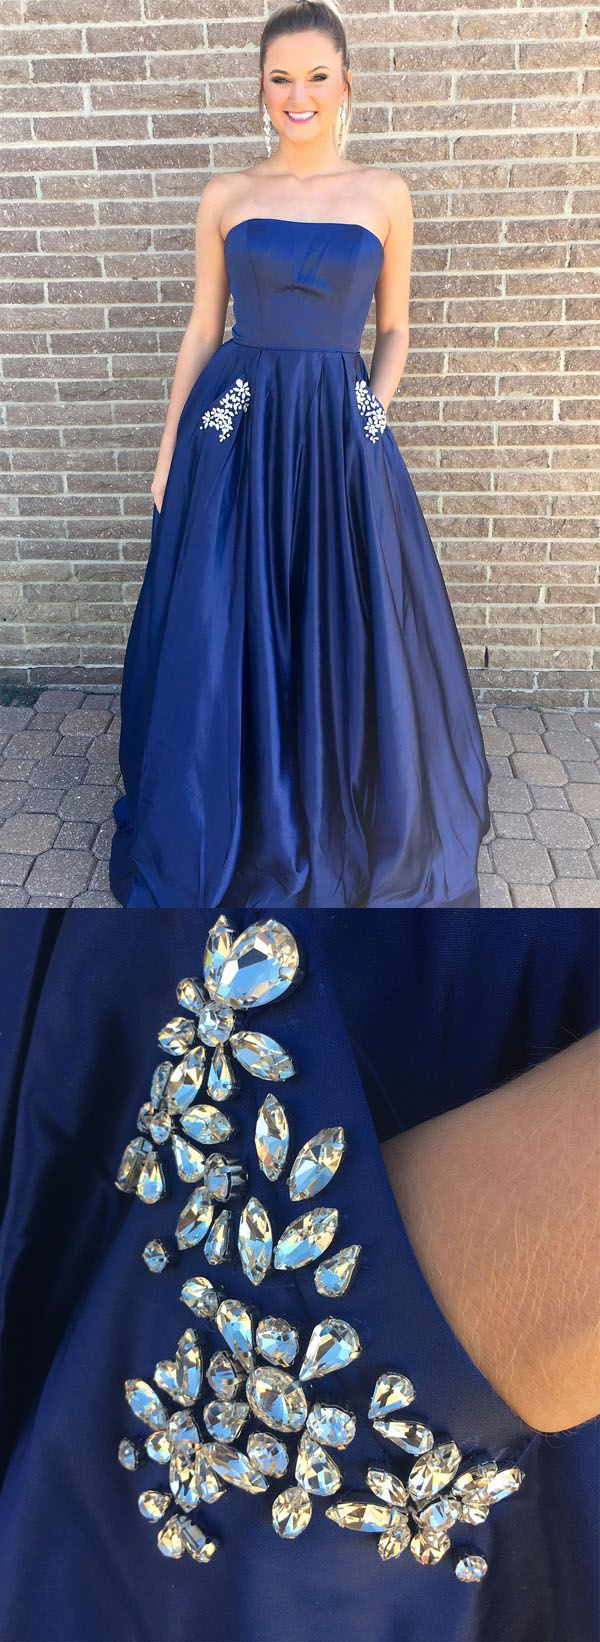 Princess strapless royal blue long prom dress with pockets pg